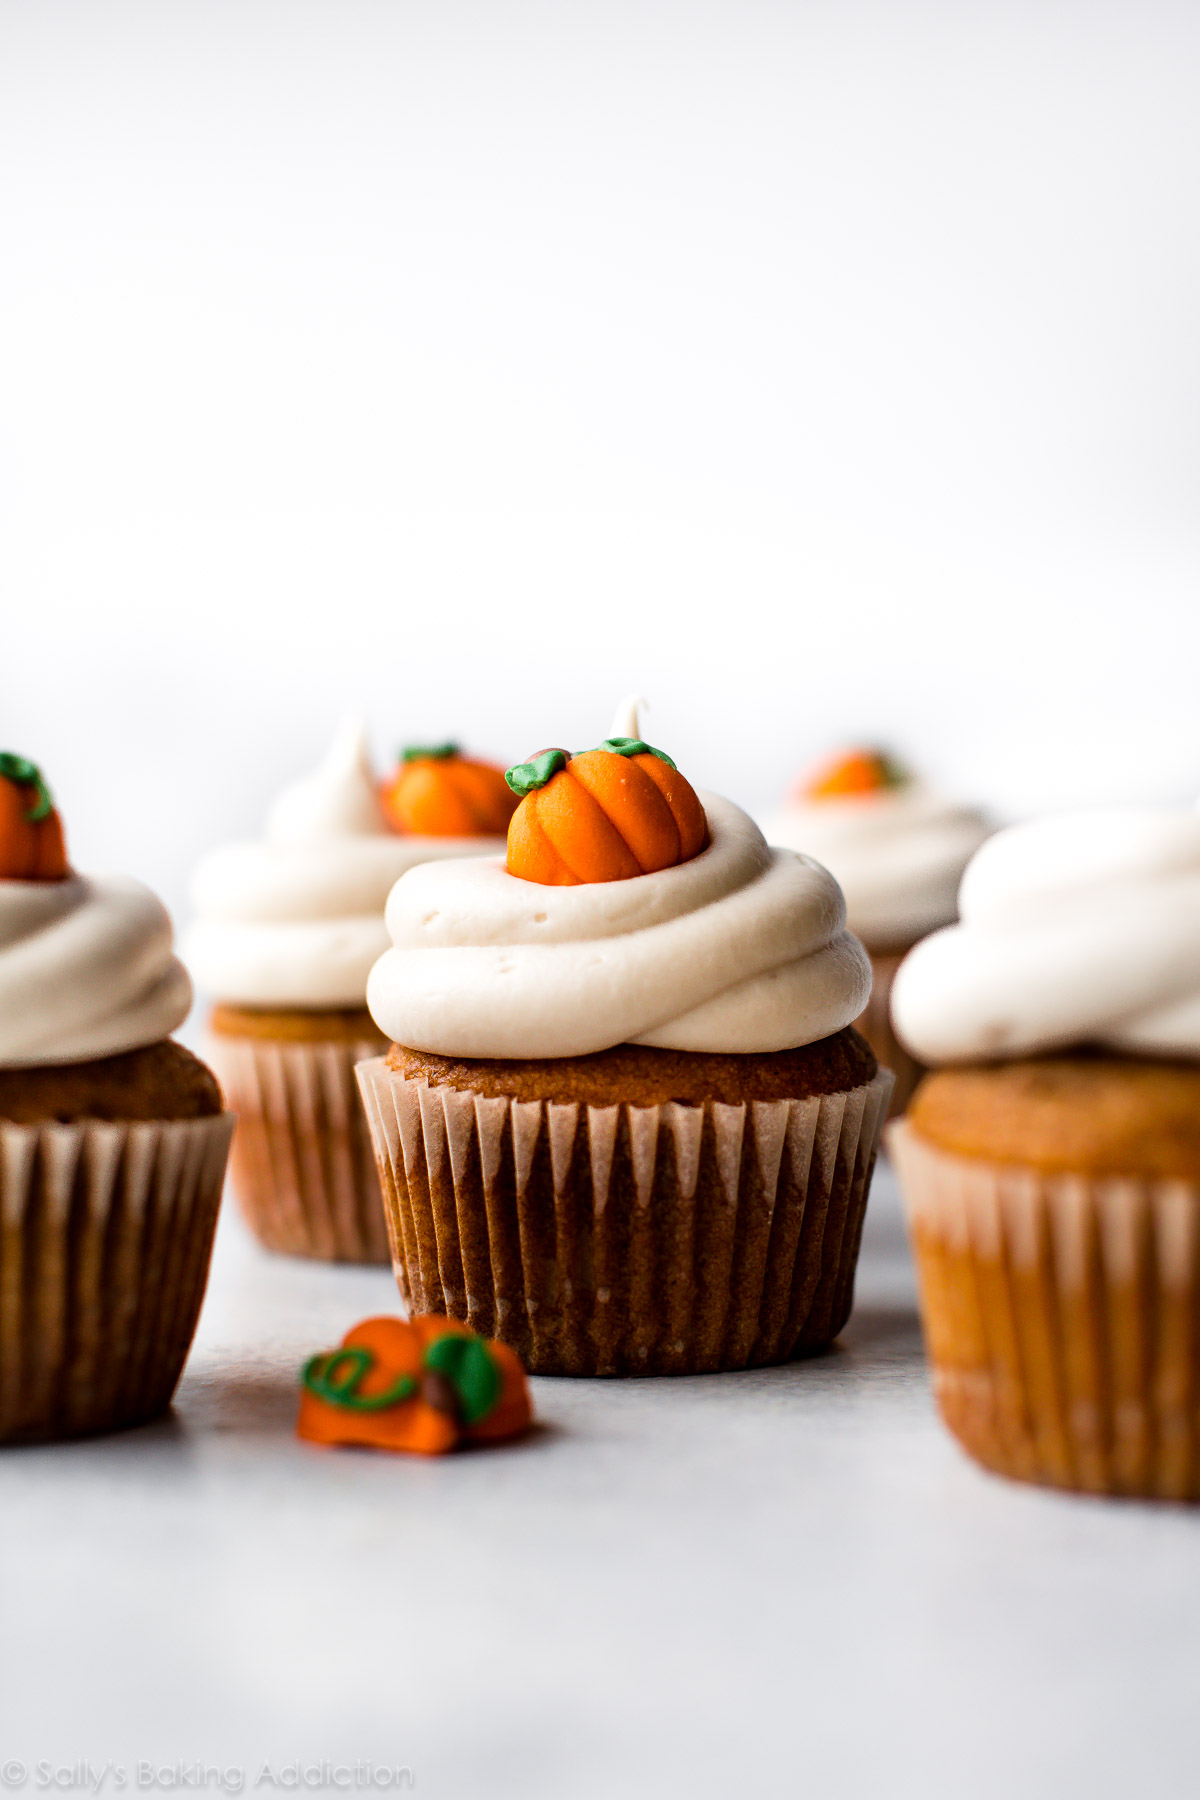 Pumpkin Cupcakes With Cream Cheese Frosting Sallys Baking Addiction